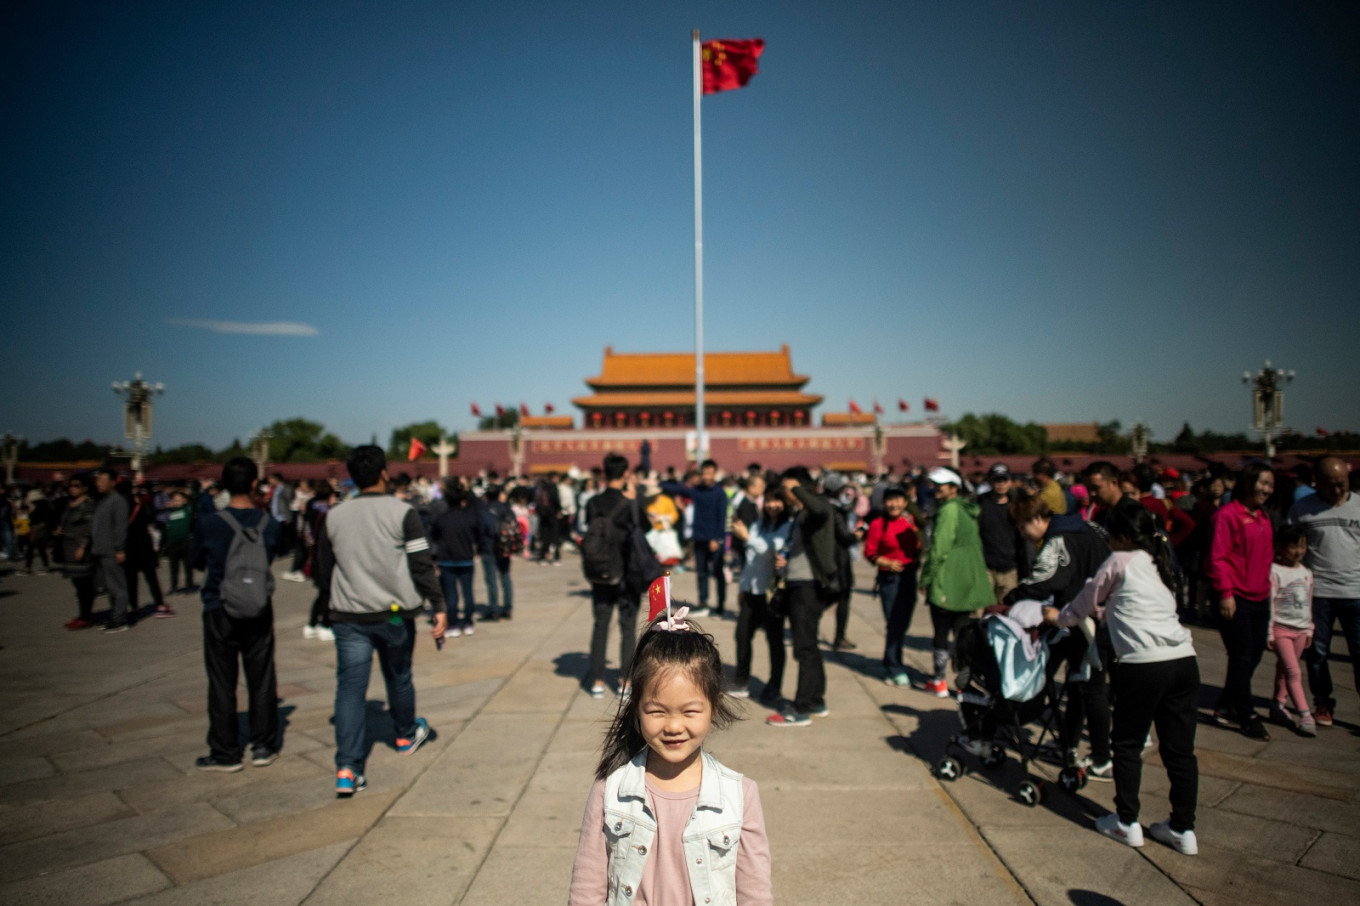 5G services launched in Tian'anmen Square